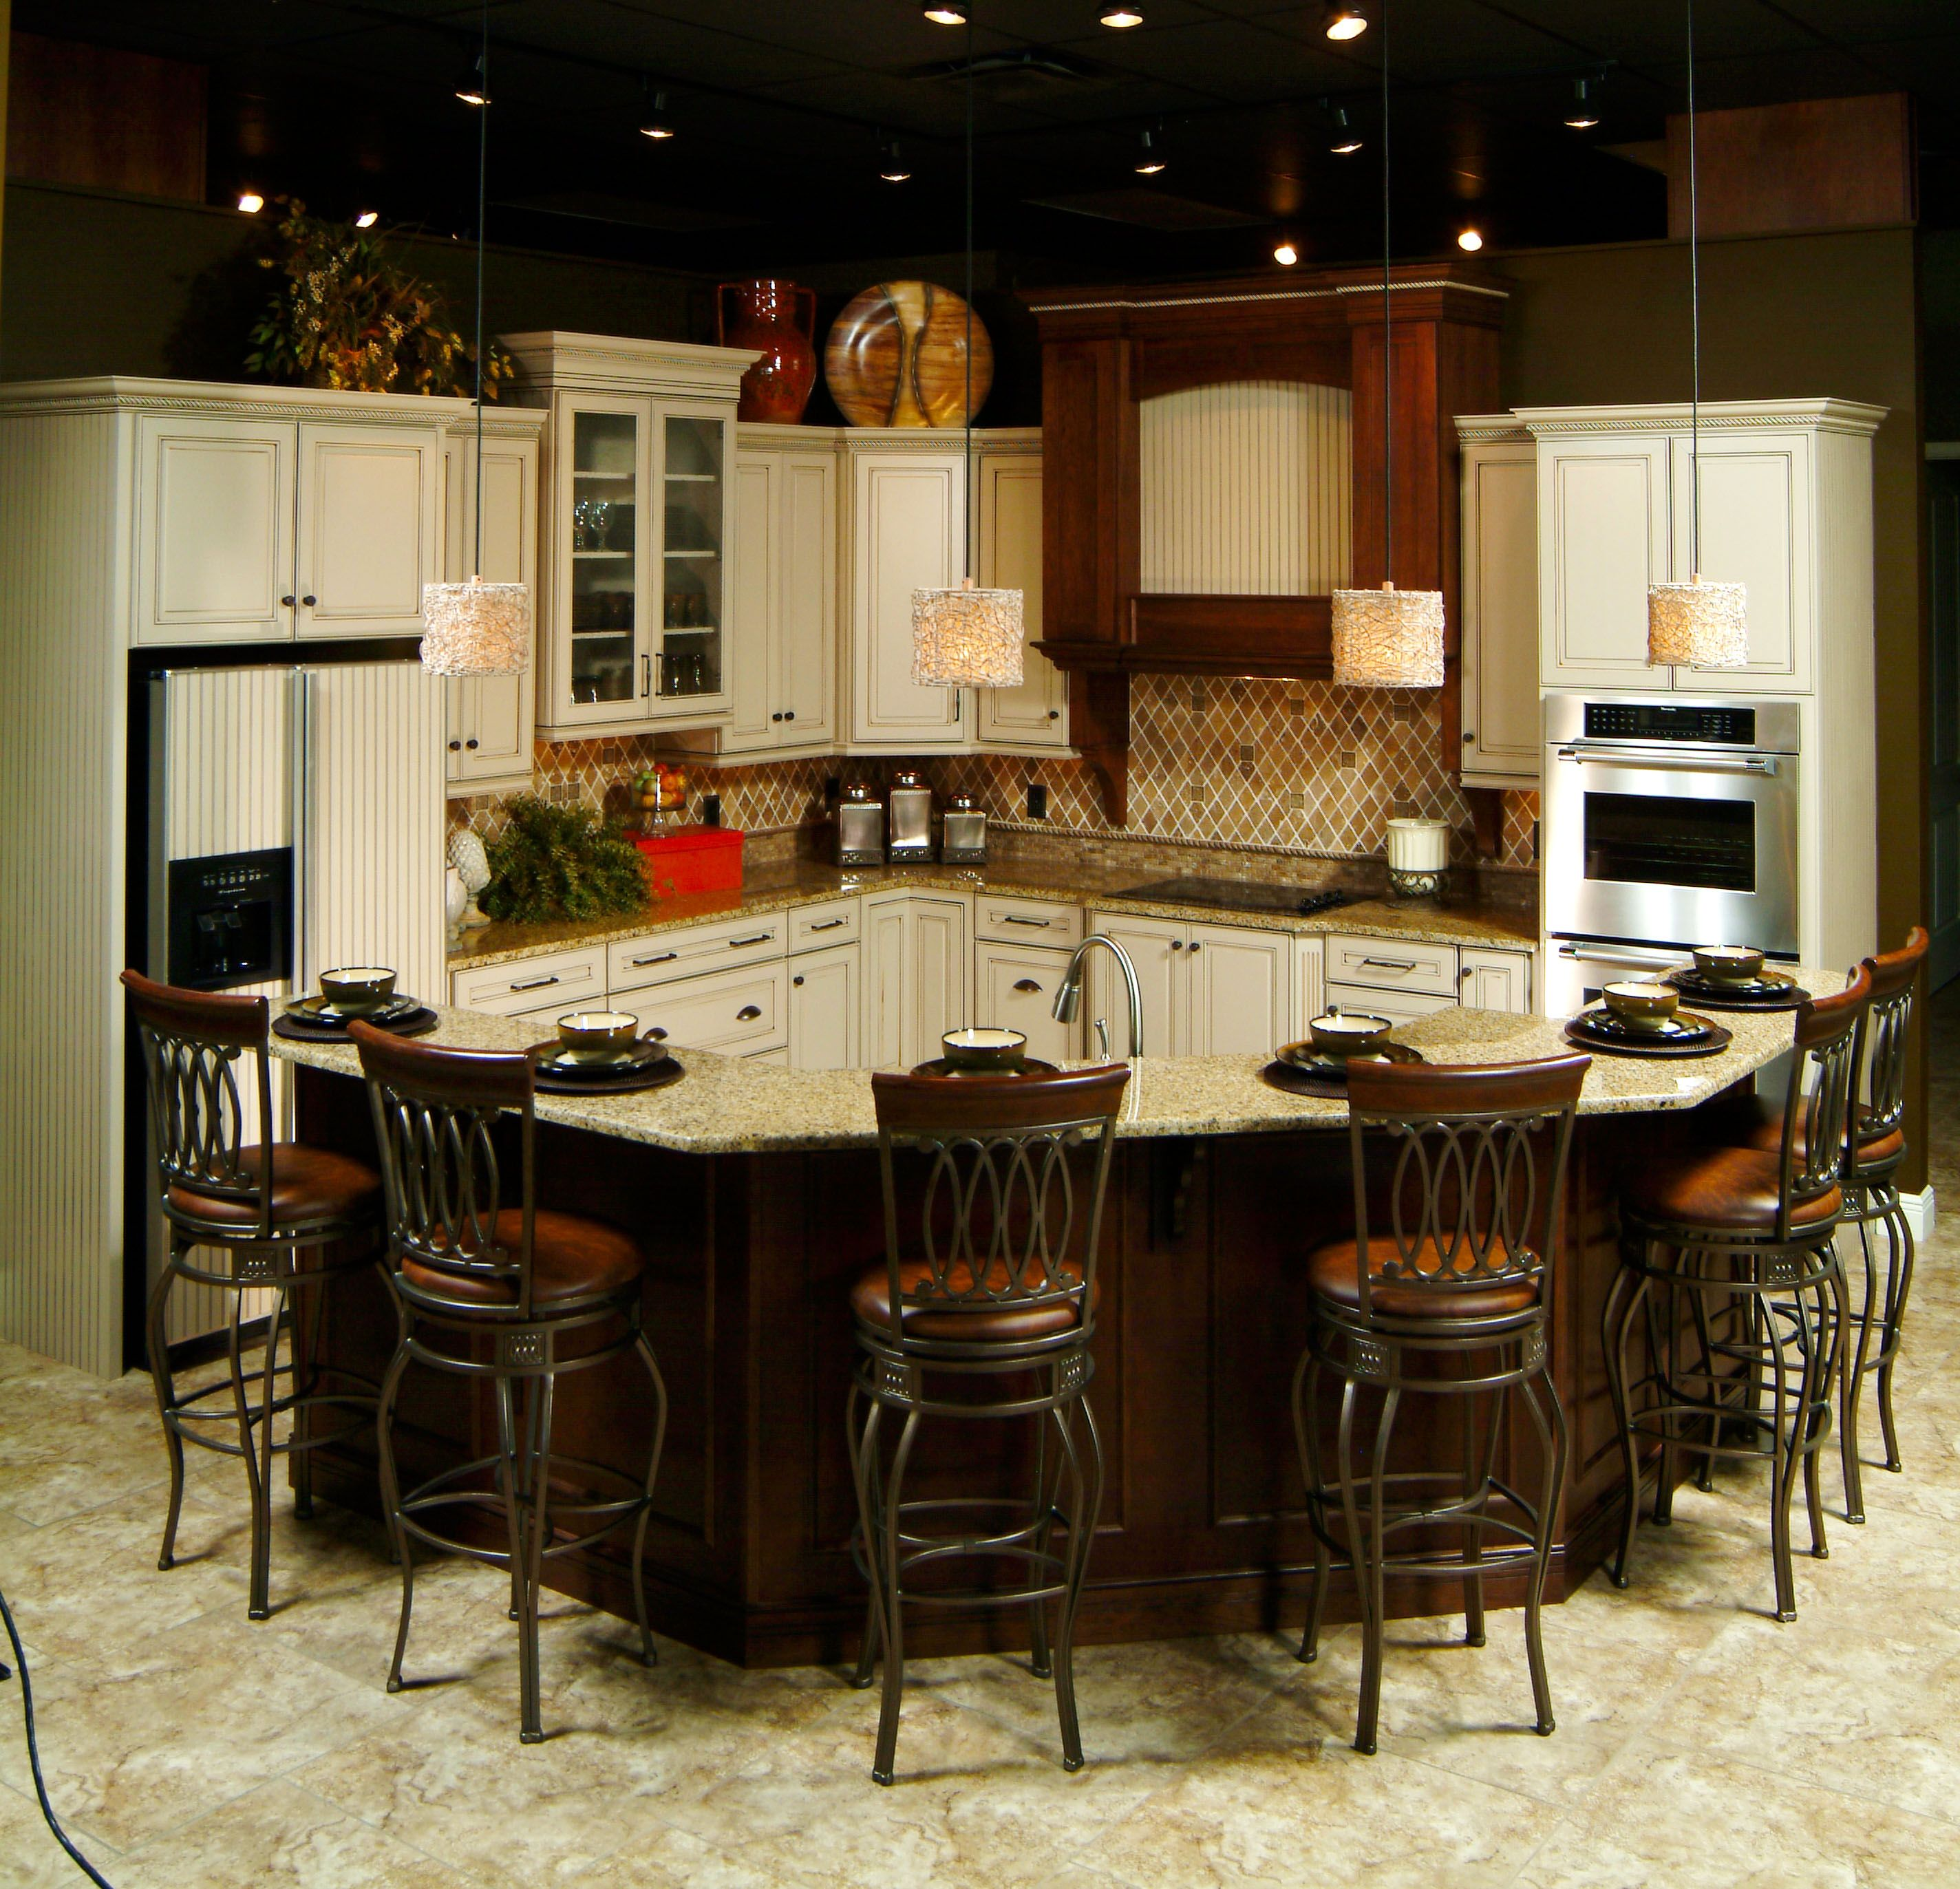 Kitchen Cabinet Features: One Of Our Showroom Designs. This Kitchen Features Brown Baroque Granite, Monterey Style Cabinet